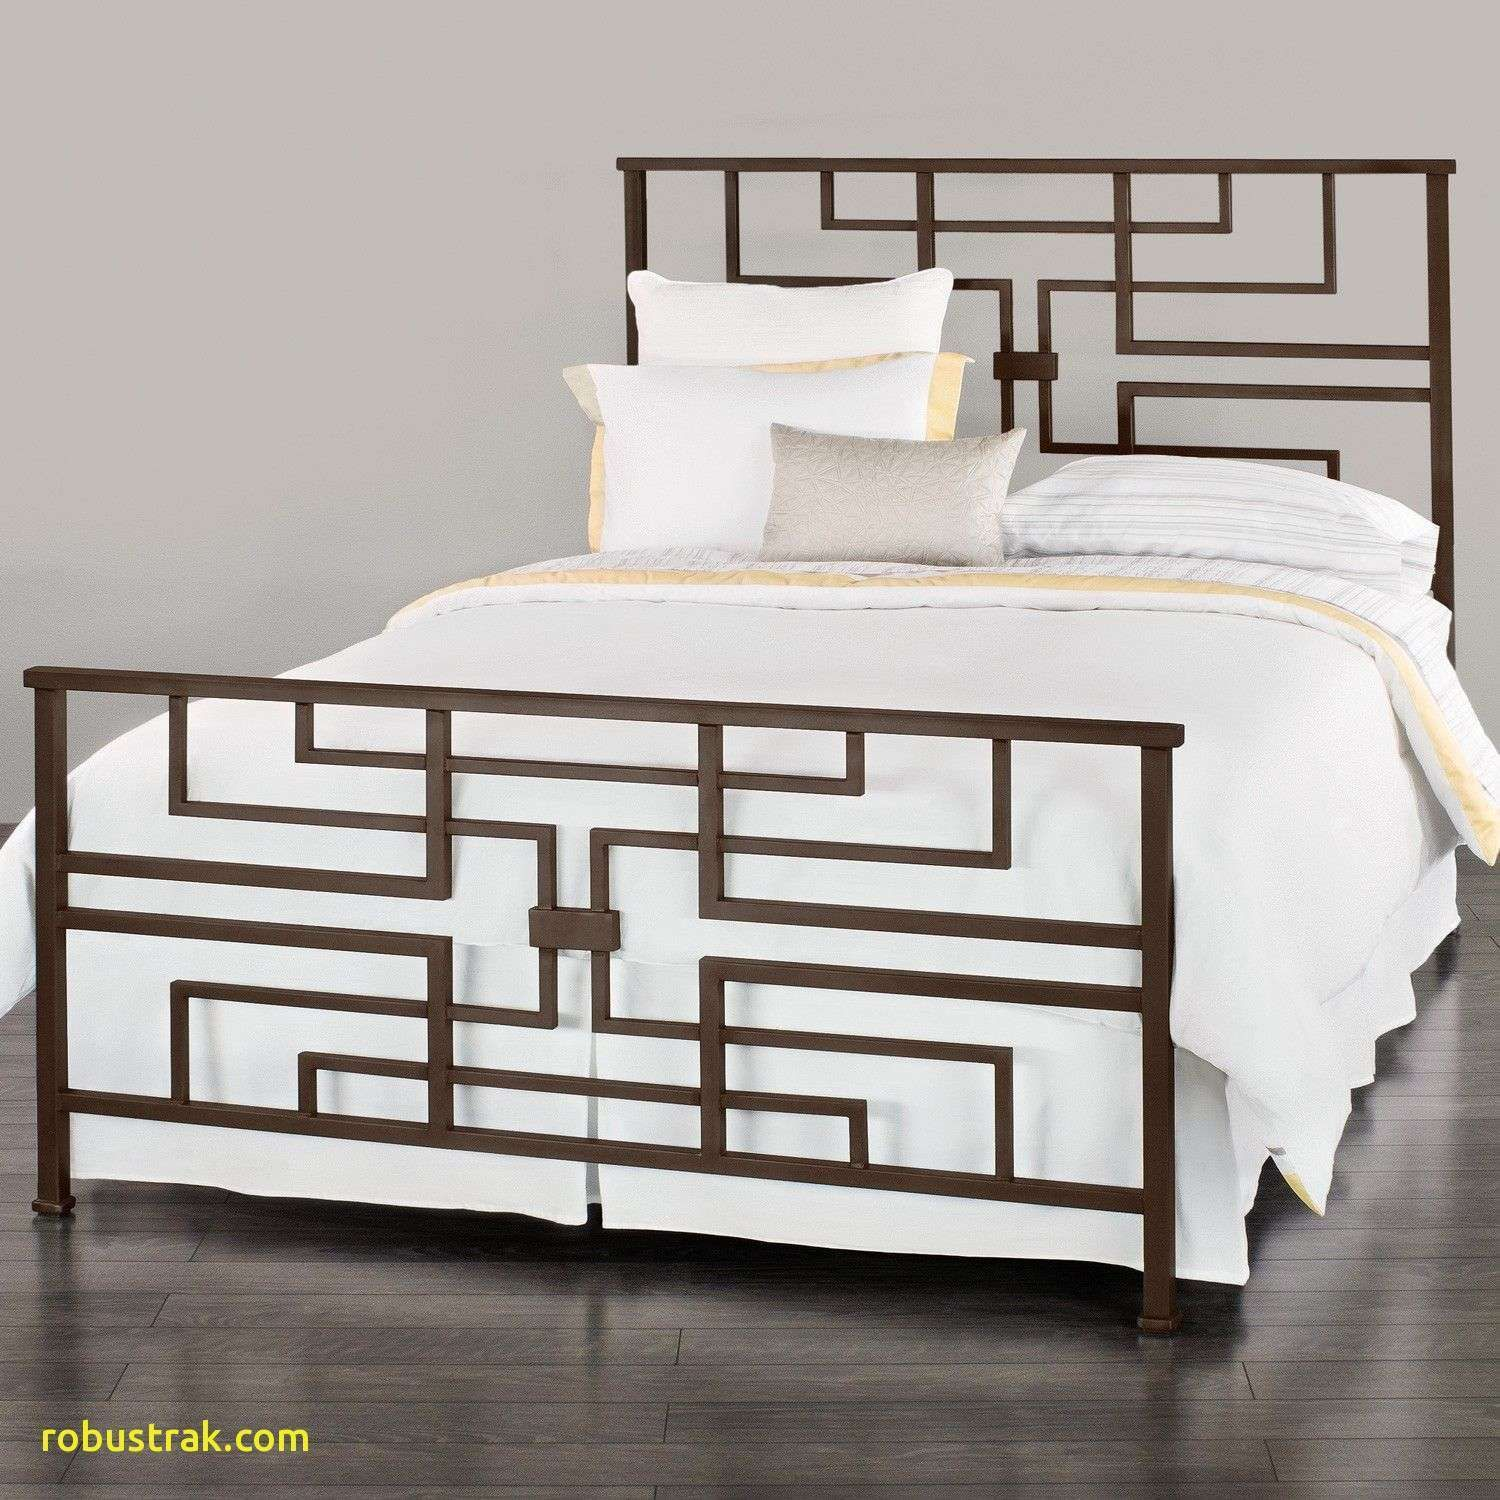 New Wrought Iron Bedroom Furniture Homedecoration Homedecorations Homedecorationideas Homedecorationtrends Homedec Iron Bed Wrought Iron Beds Bed Decor